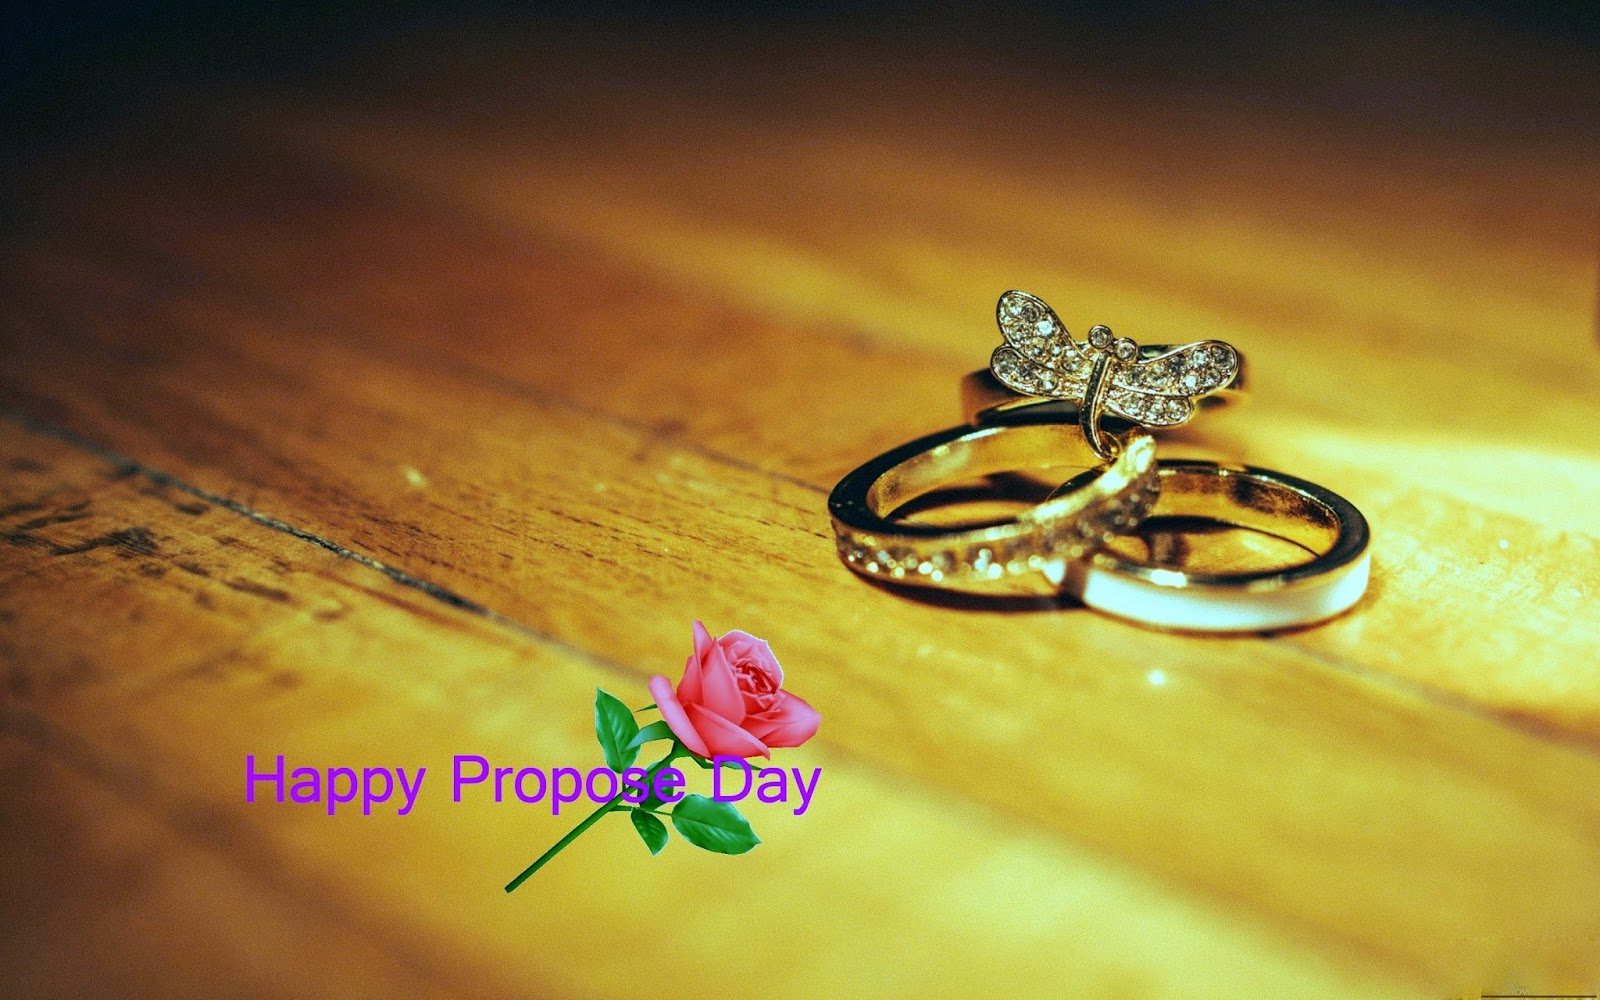 Propose Day Wallpapers 2016 1080p HD